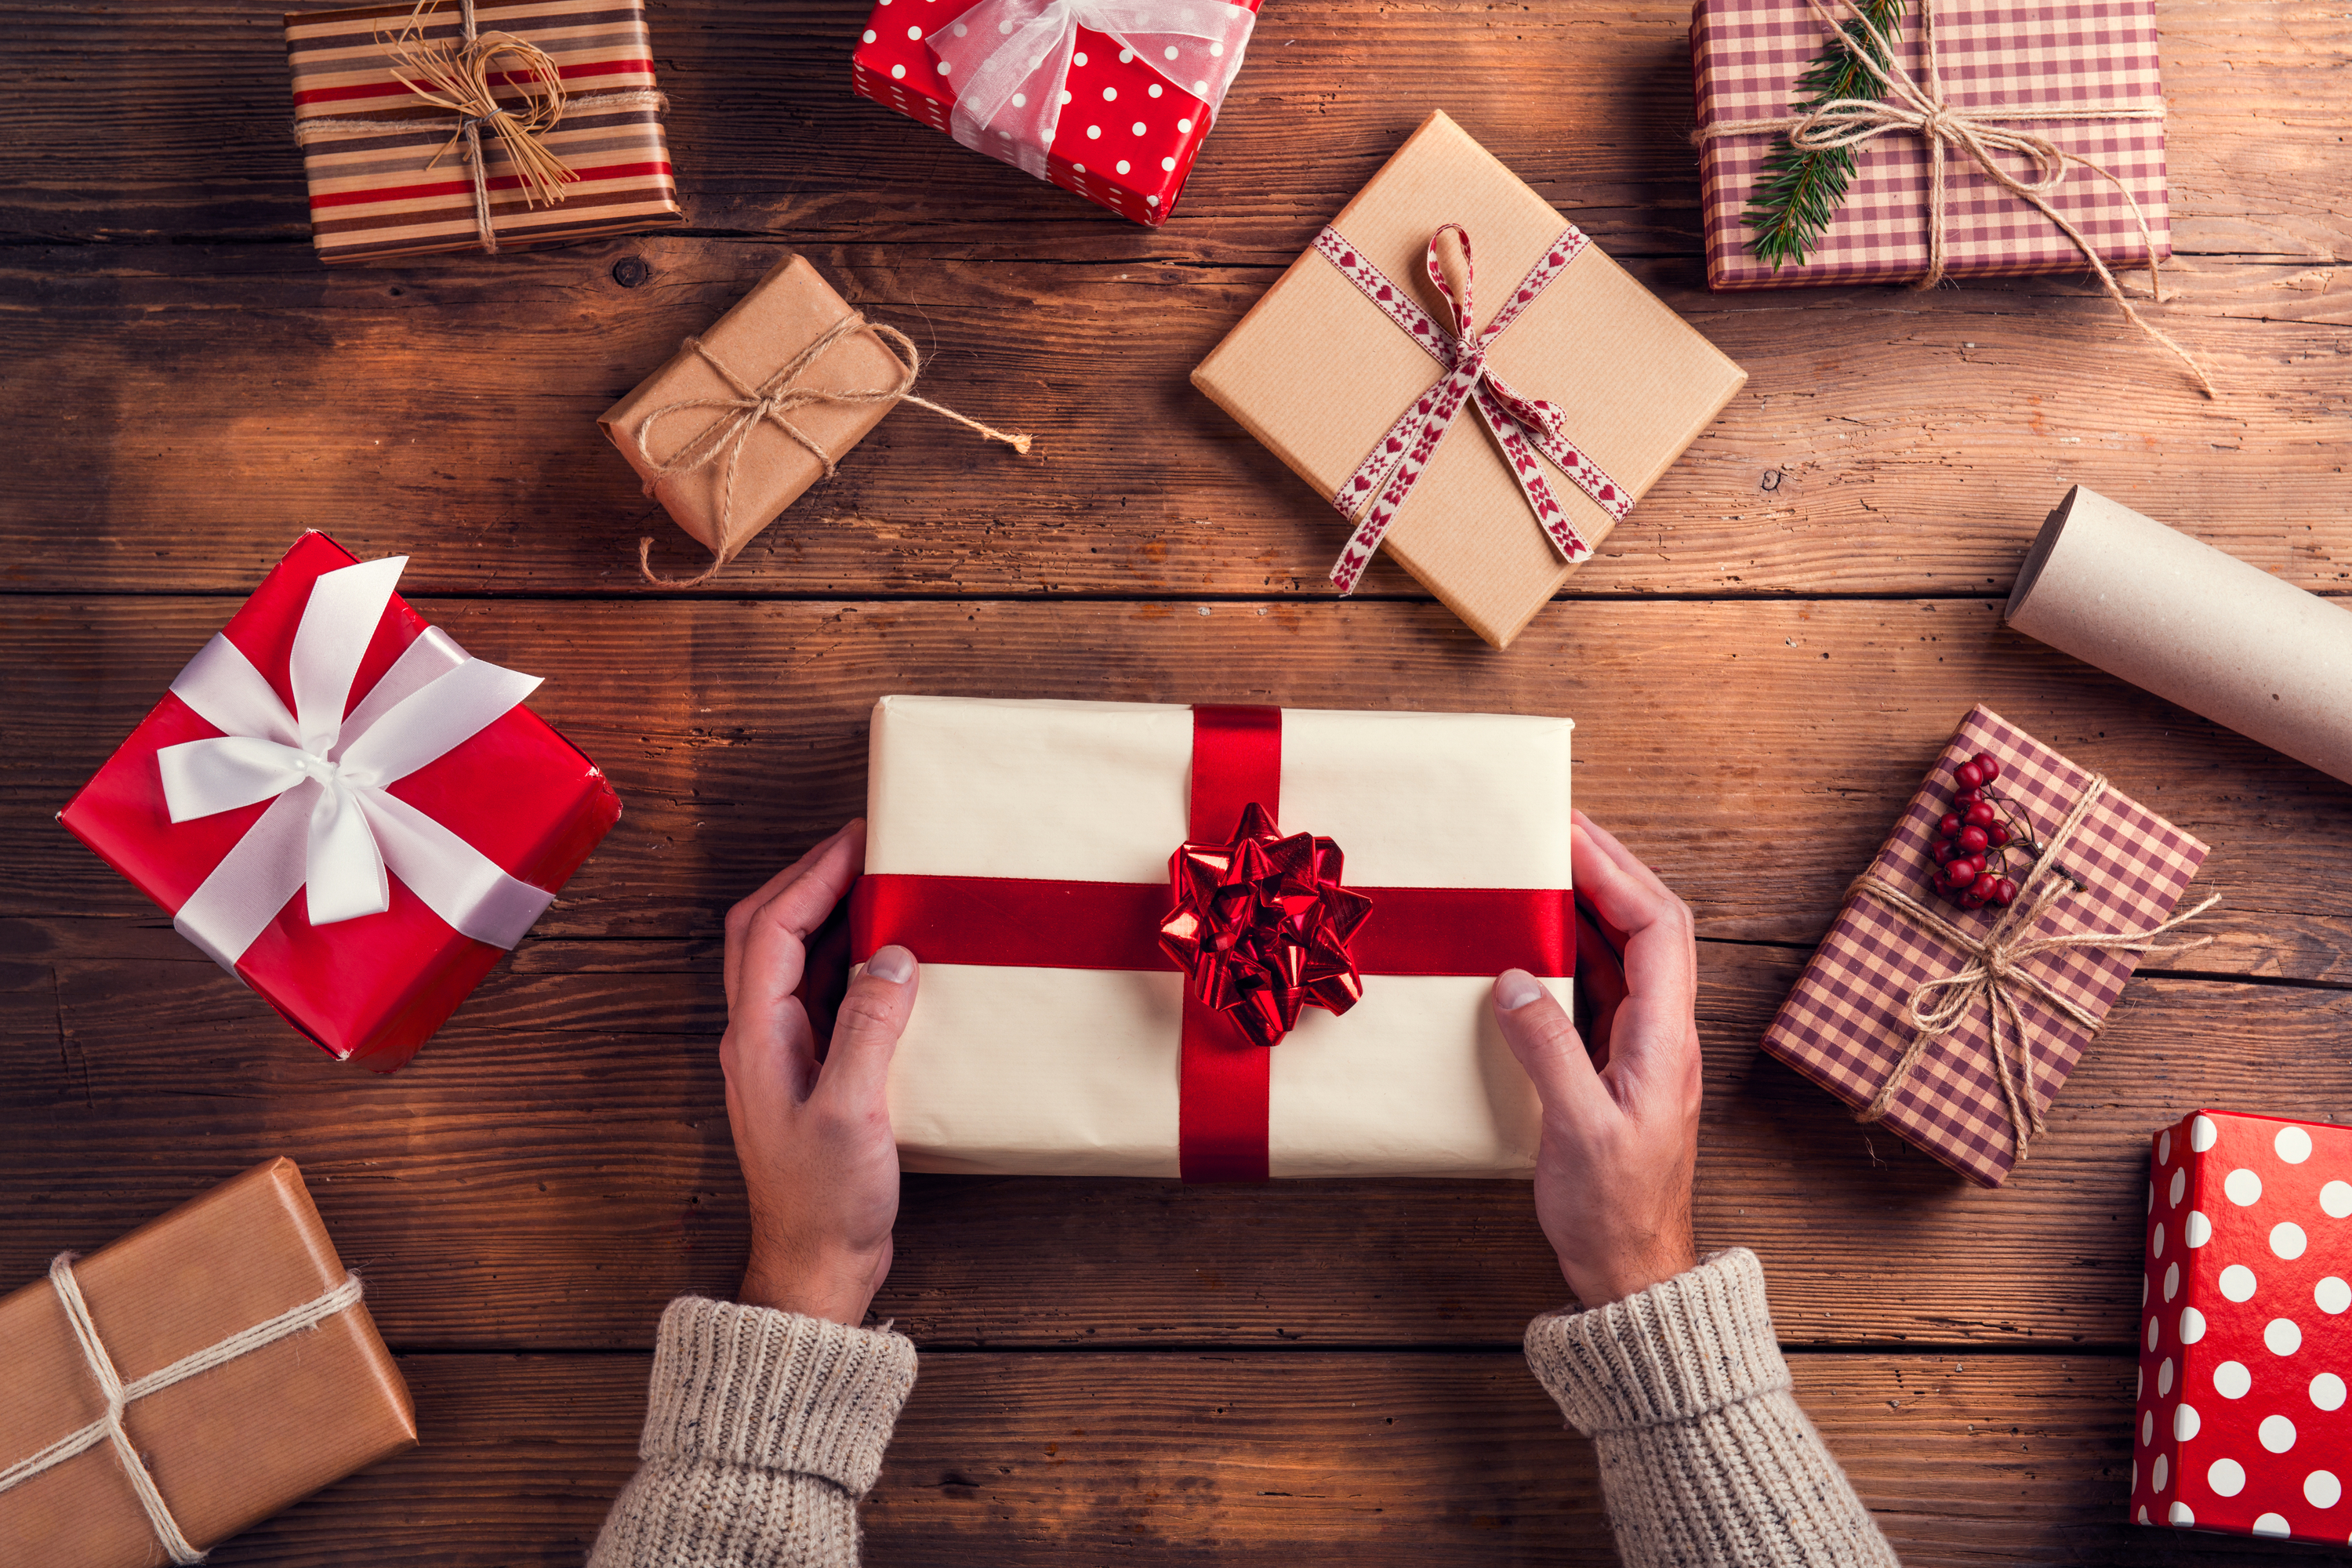 holiday gift giving guide | gift giving | gifts | gift guide | holidays | gift giving guide | perfect gifts